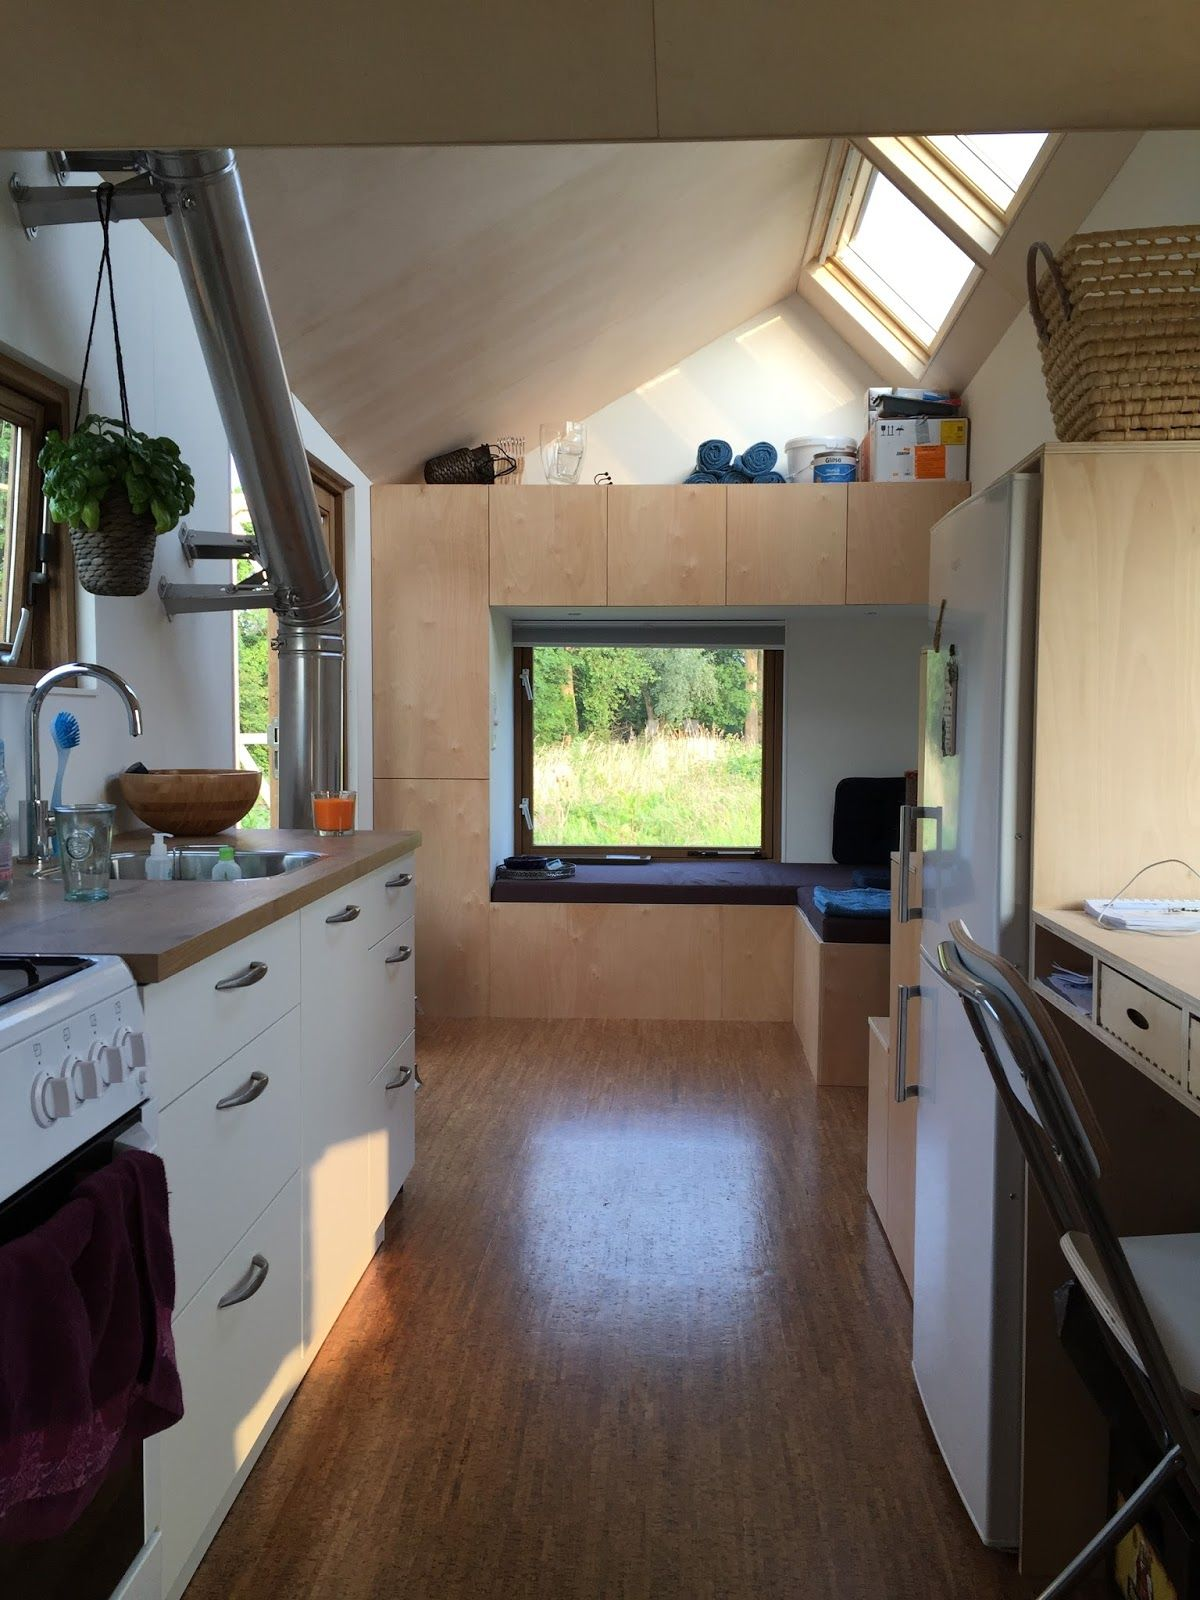 500 sq ft tiny houses pictures inside and out - Tiny House Town A Home Blog Sharing Beautiful Tiny Homes And Houses Usually Under 500